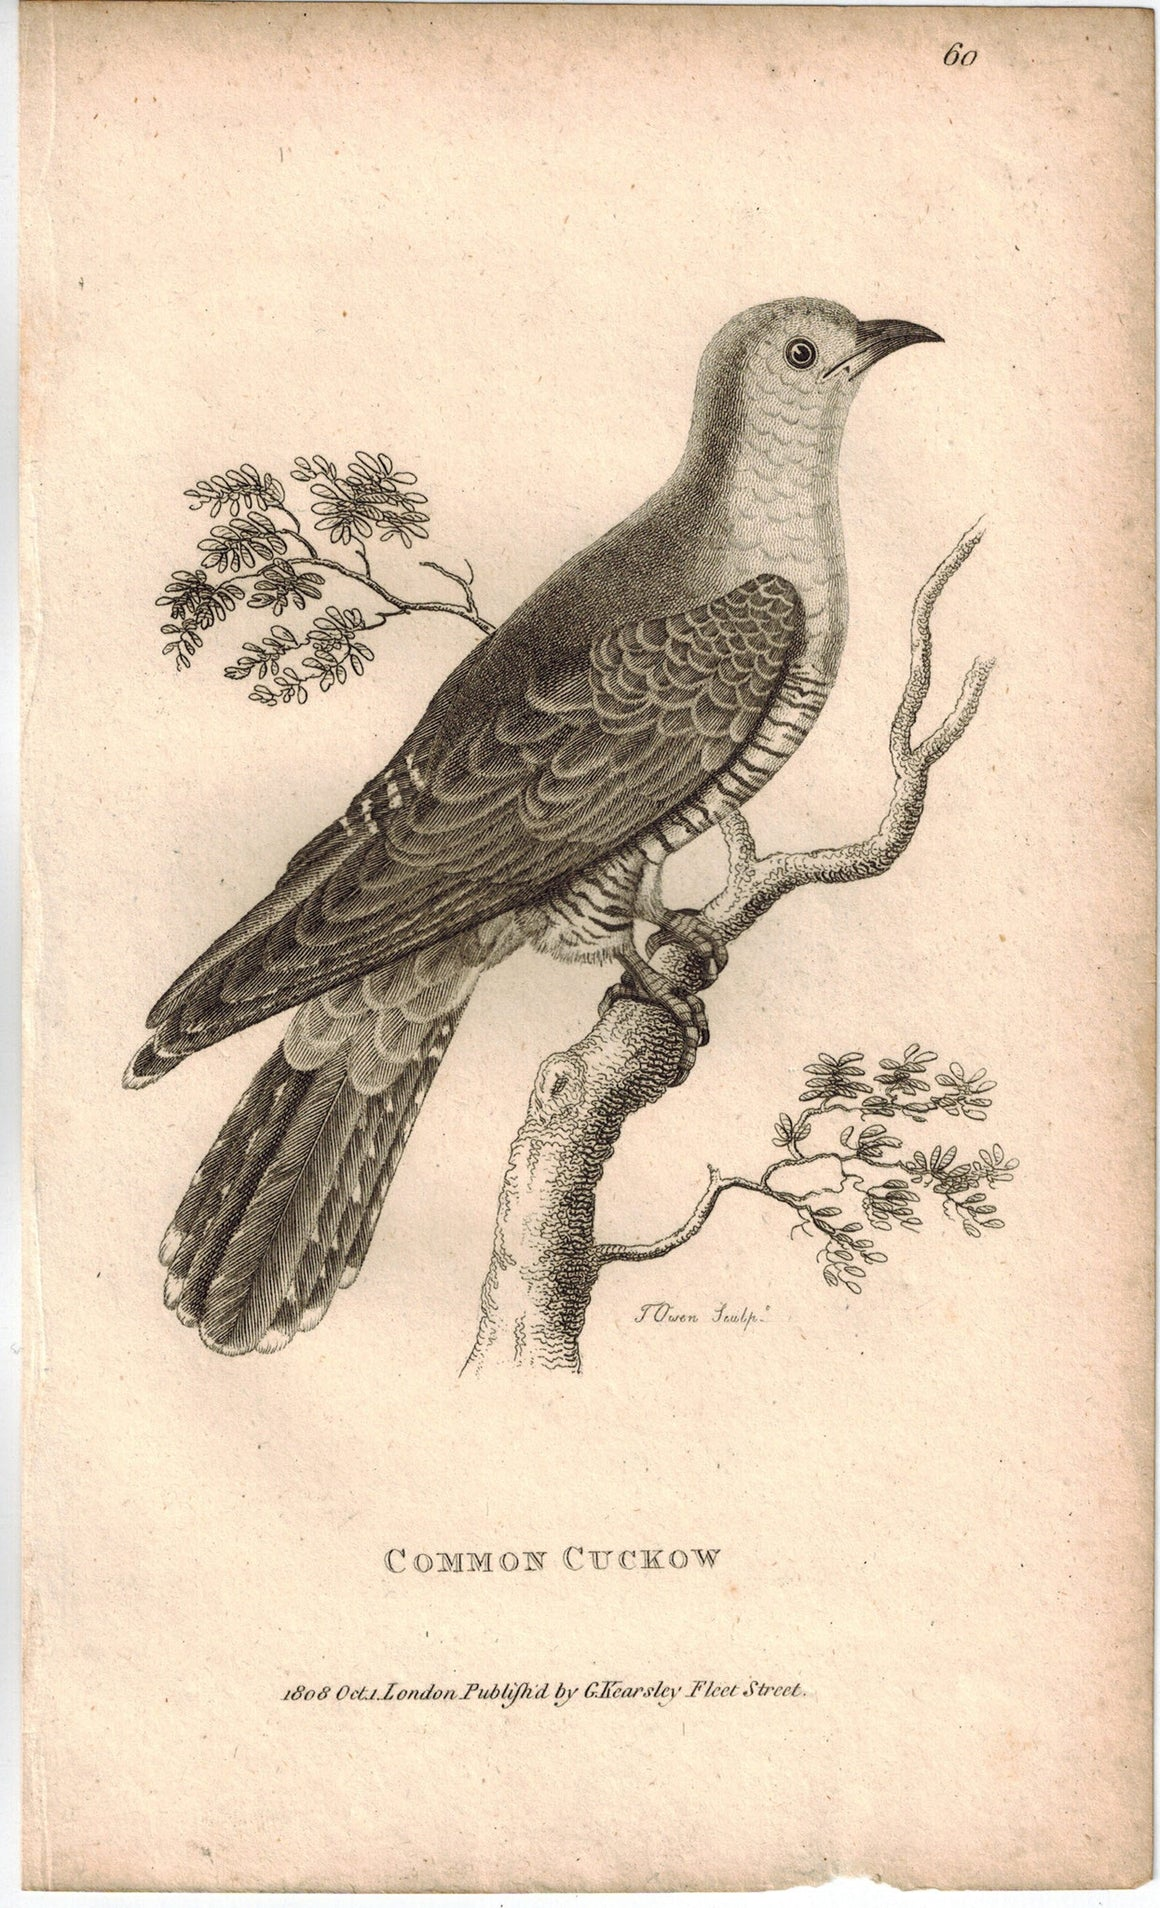 Common Cuckow Bird Print 1809 George Shaw Original Engraving